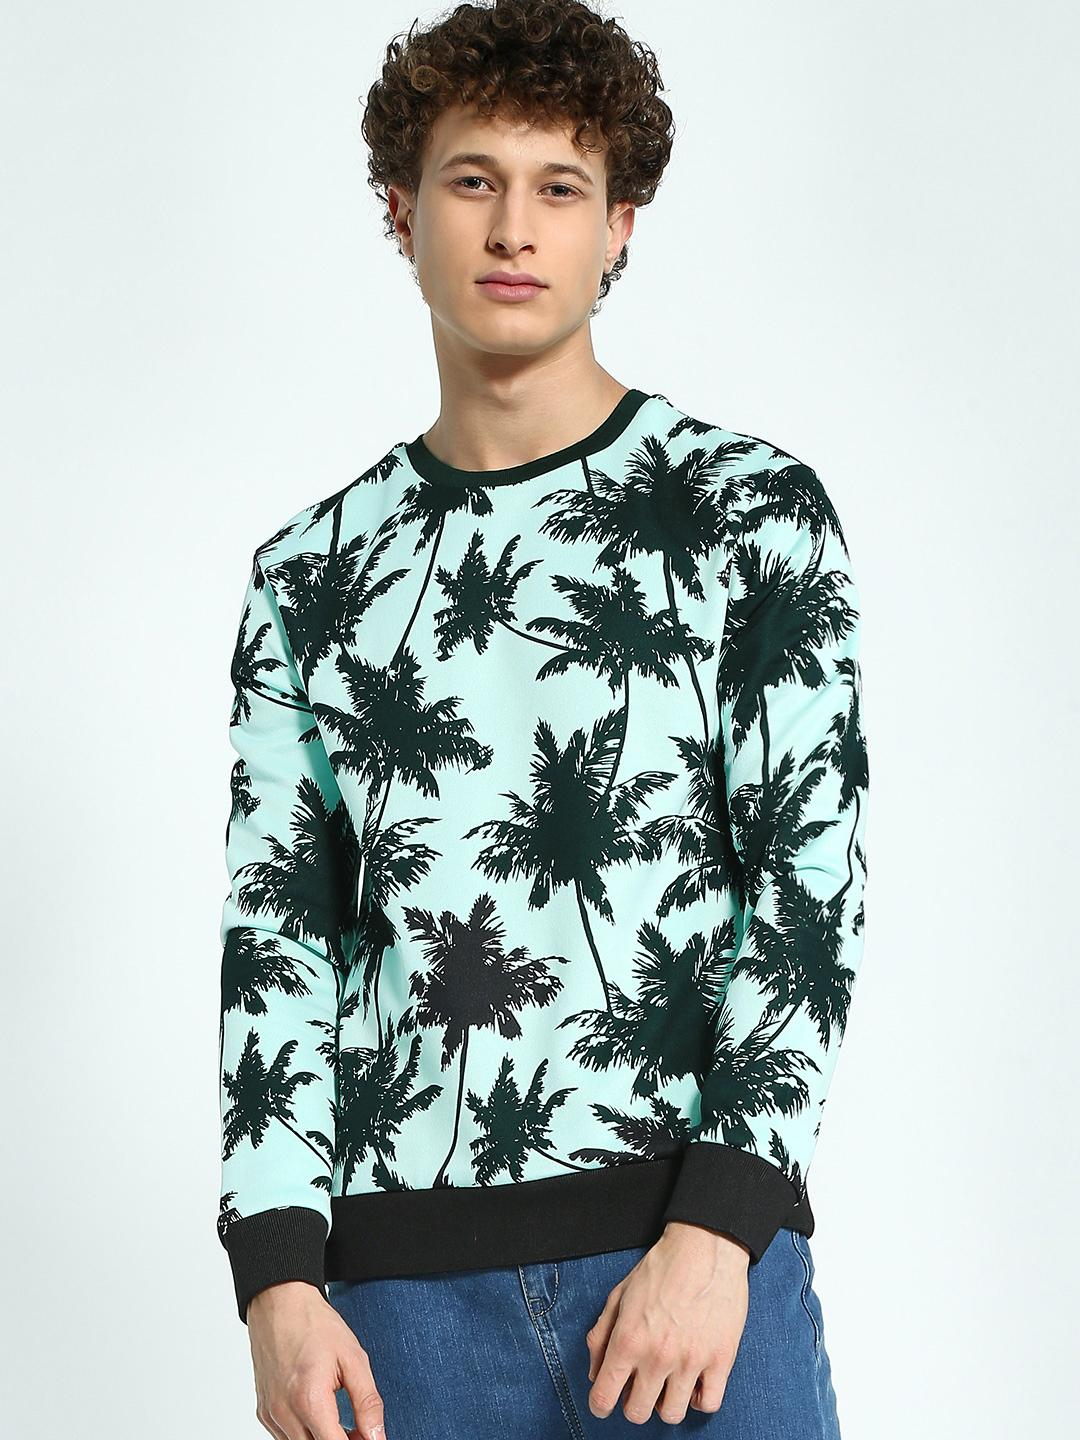 KOOVS Multi Palm Tree Print Sweatshirt 1